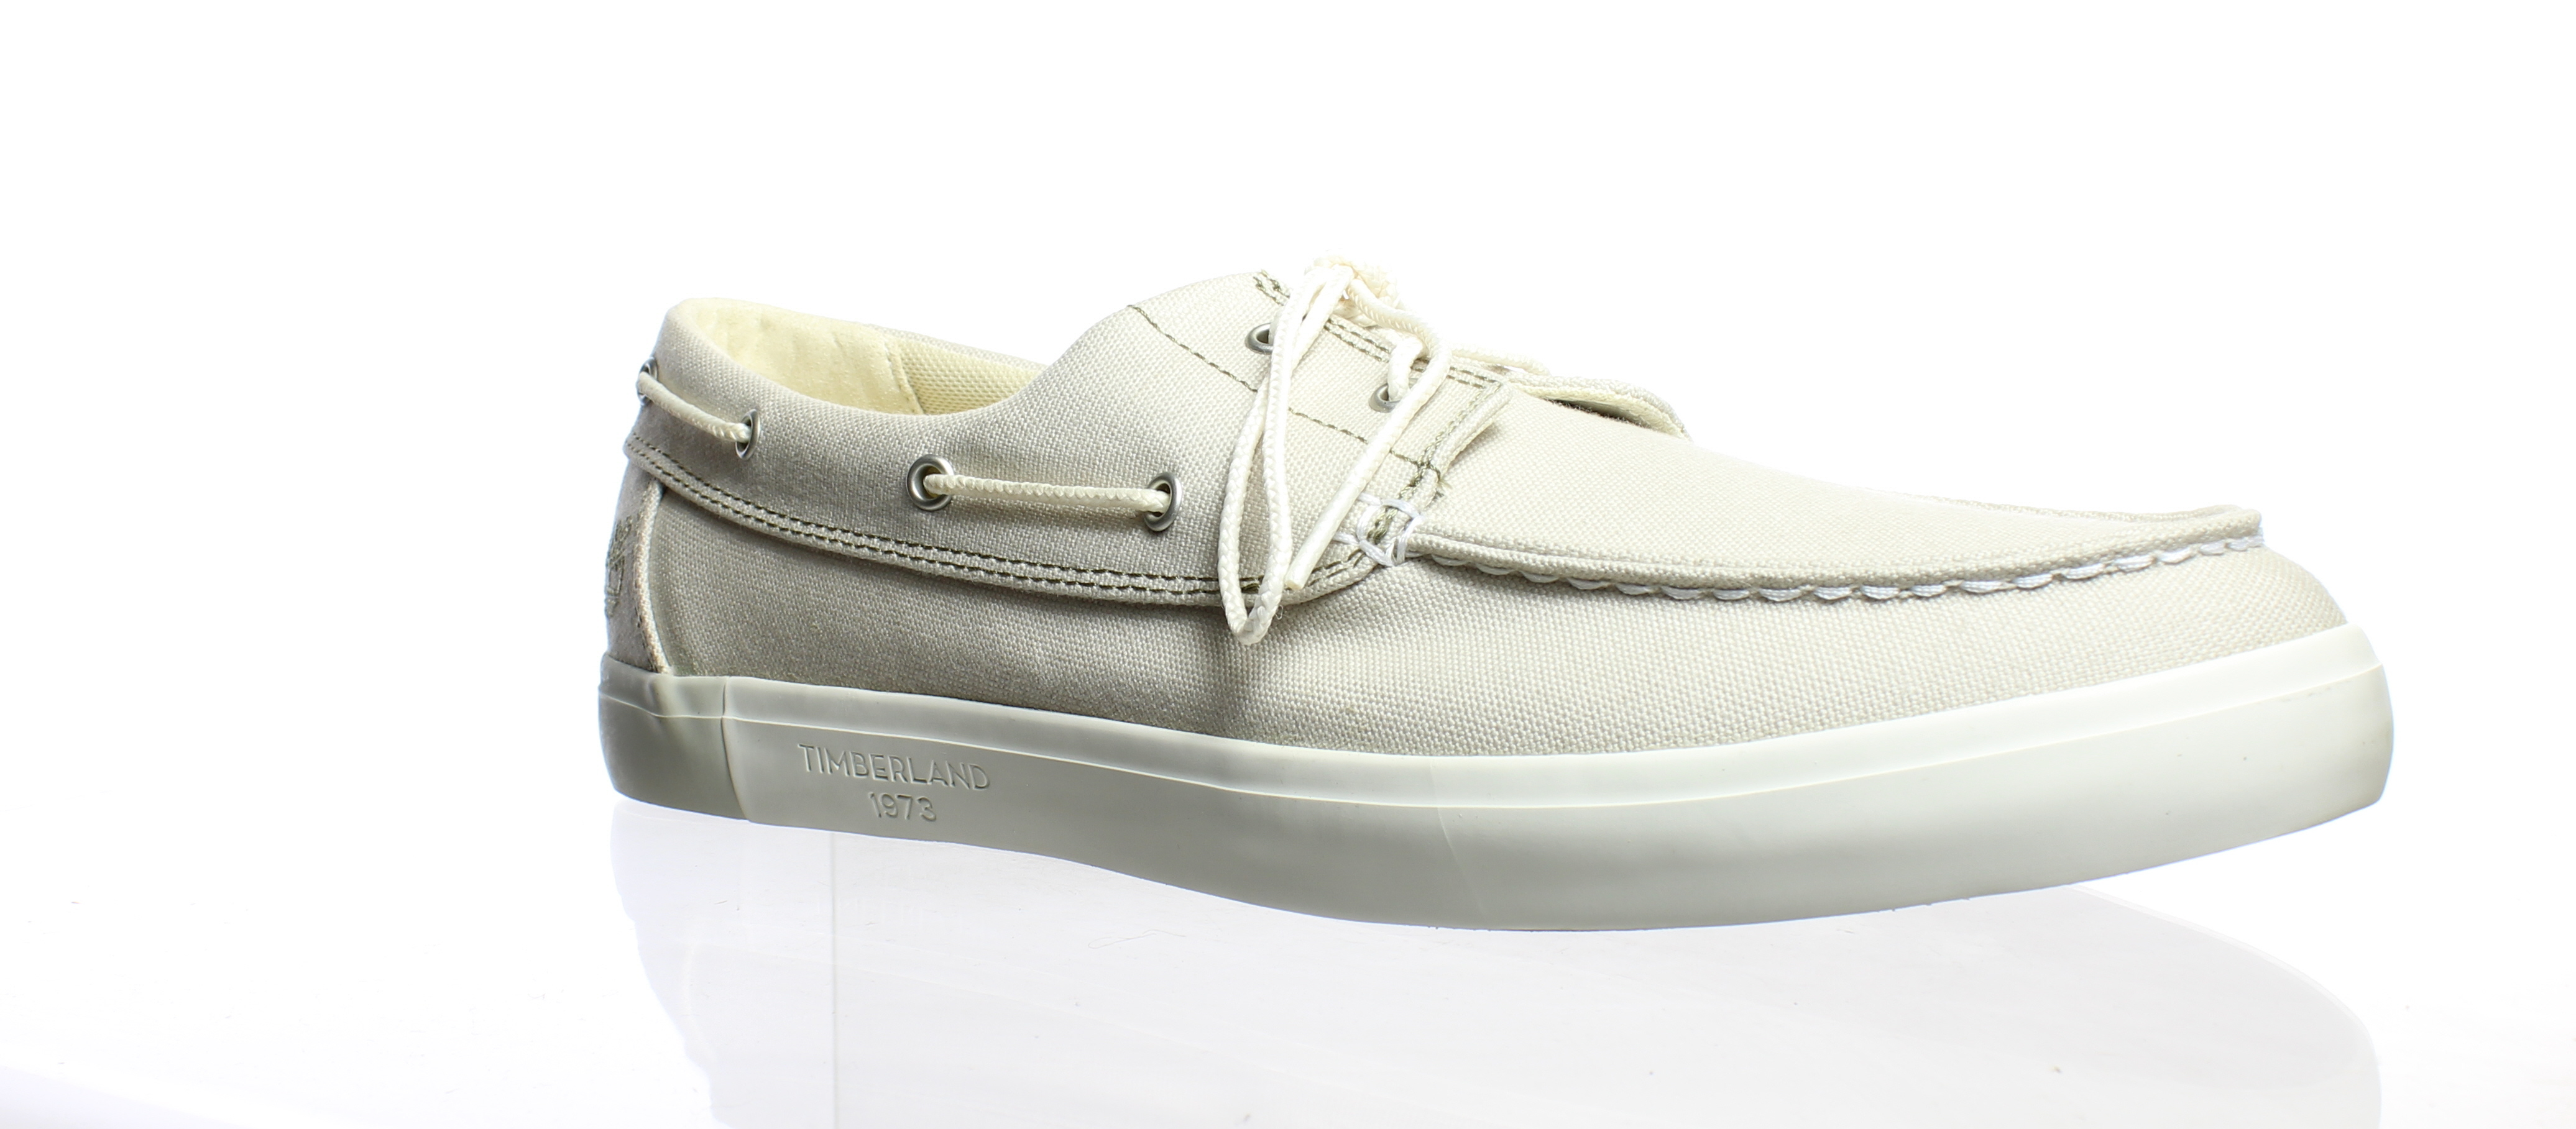 Details about Timberland Mens Newport Bay 2 Rainy Day Canvas Boat Shoes Size 11.5 (406646)